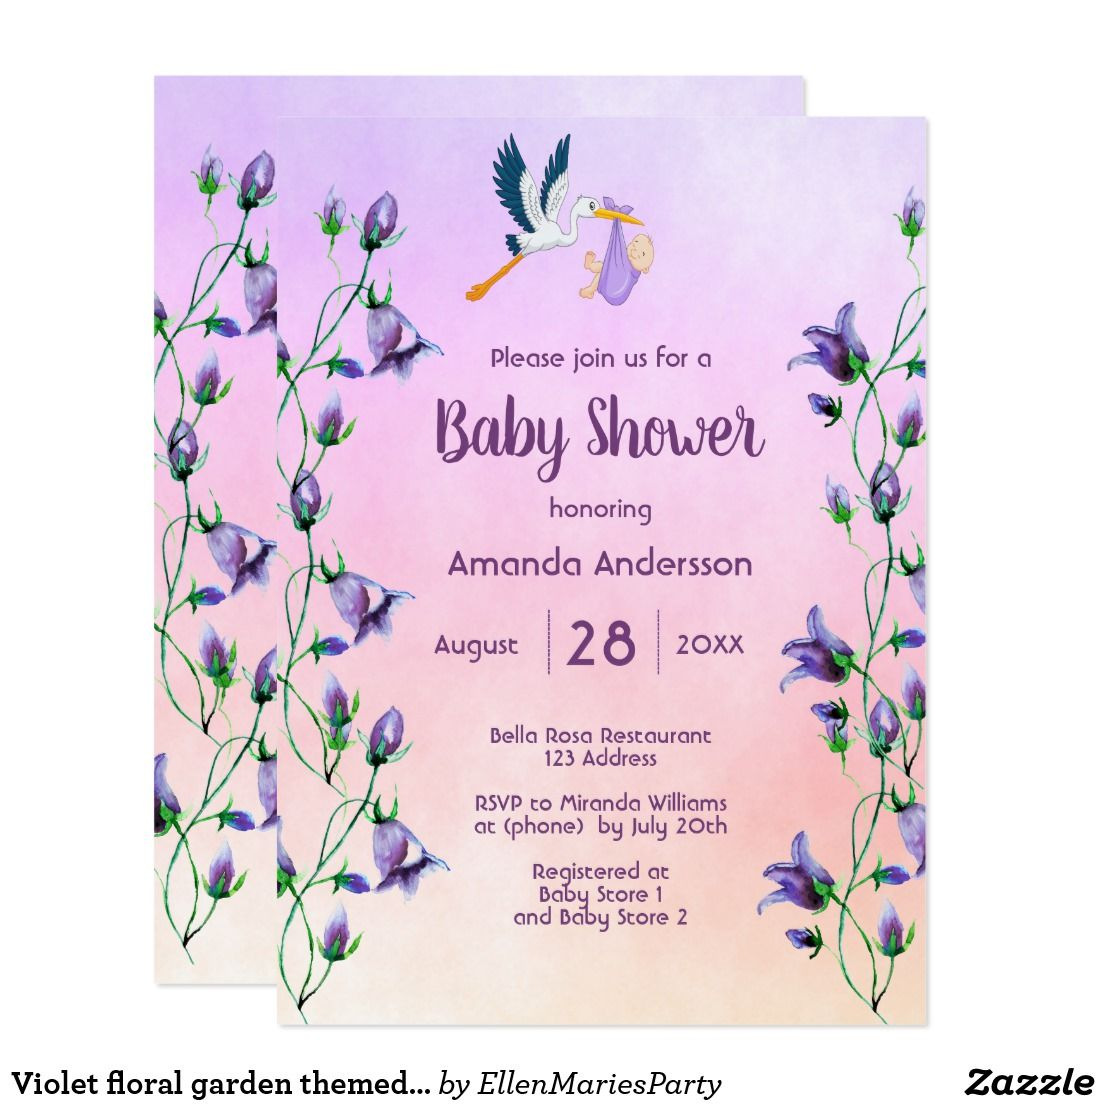 Baby Shower Invitation Letter Extraordinary Violet Floral Garden Themed Baby Shower Invitation  Babies And Baby .